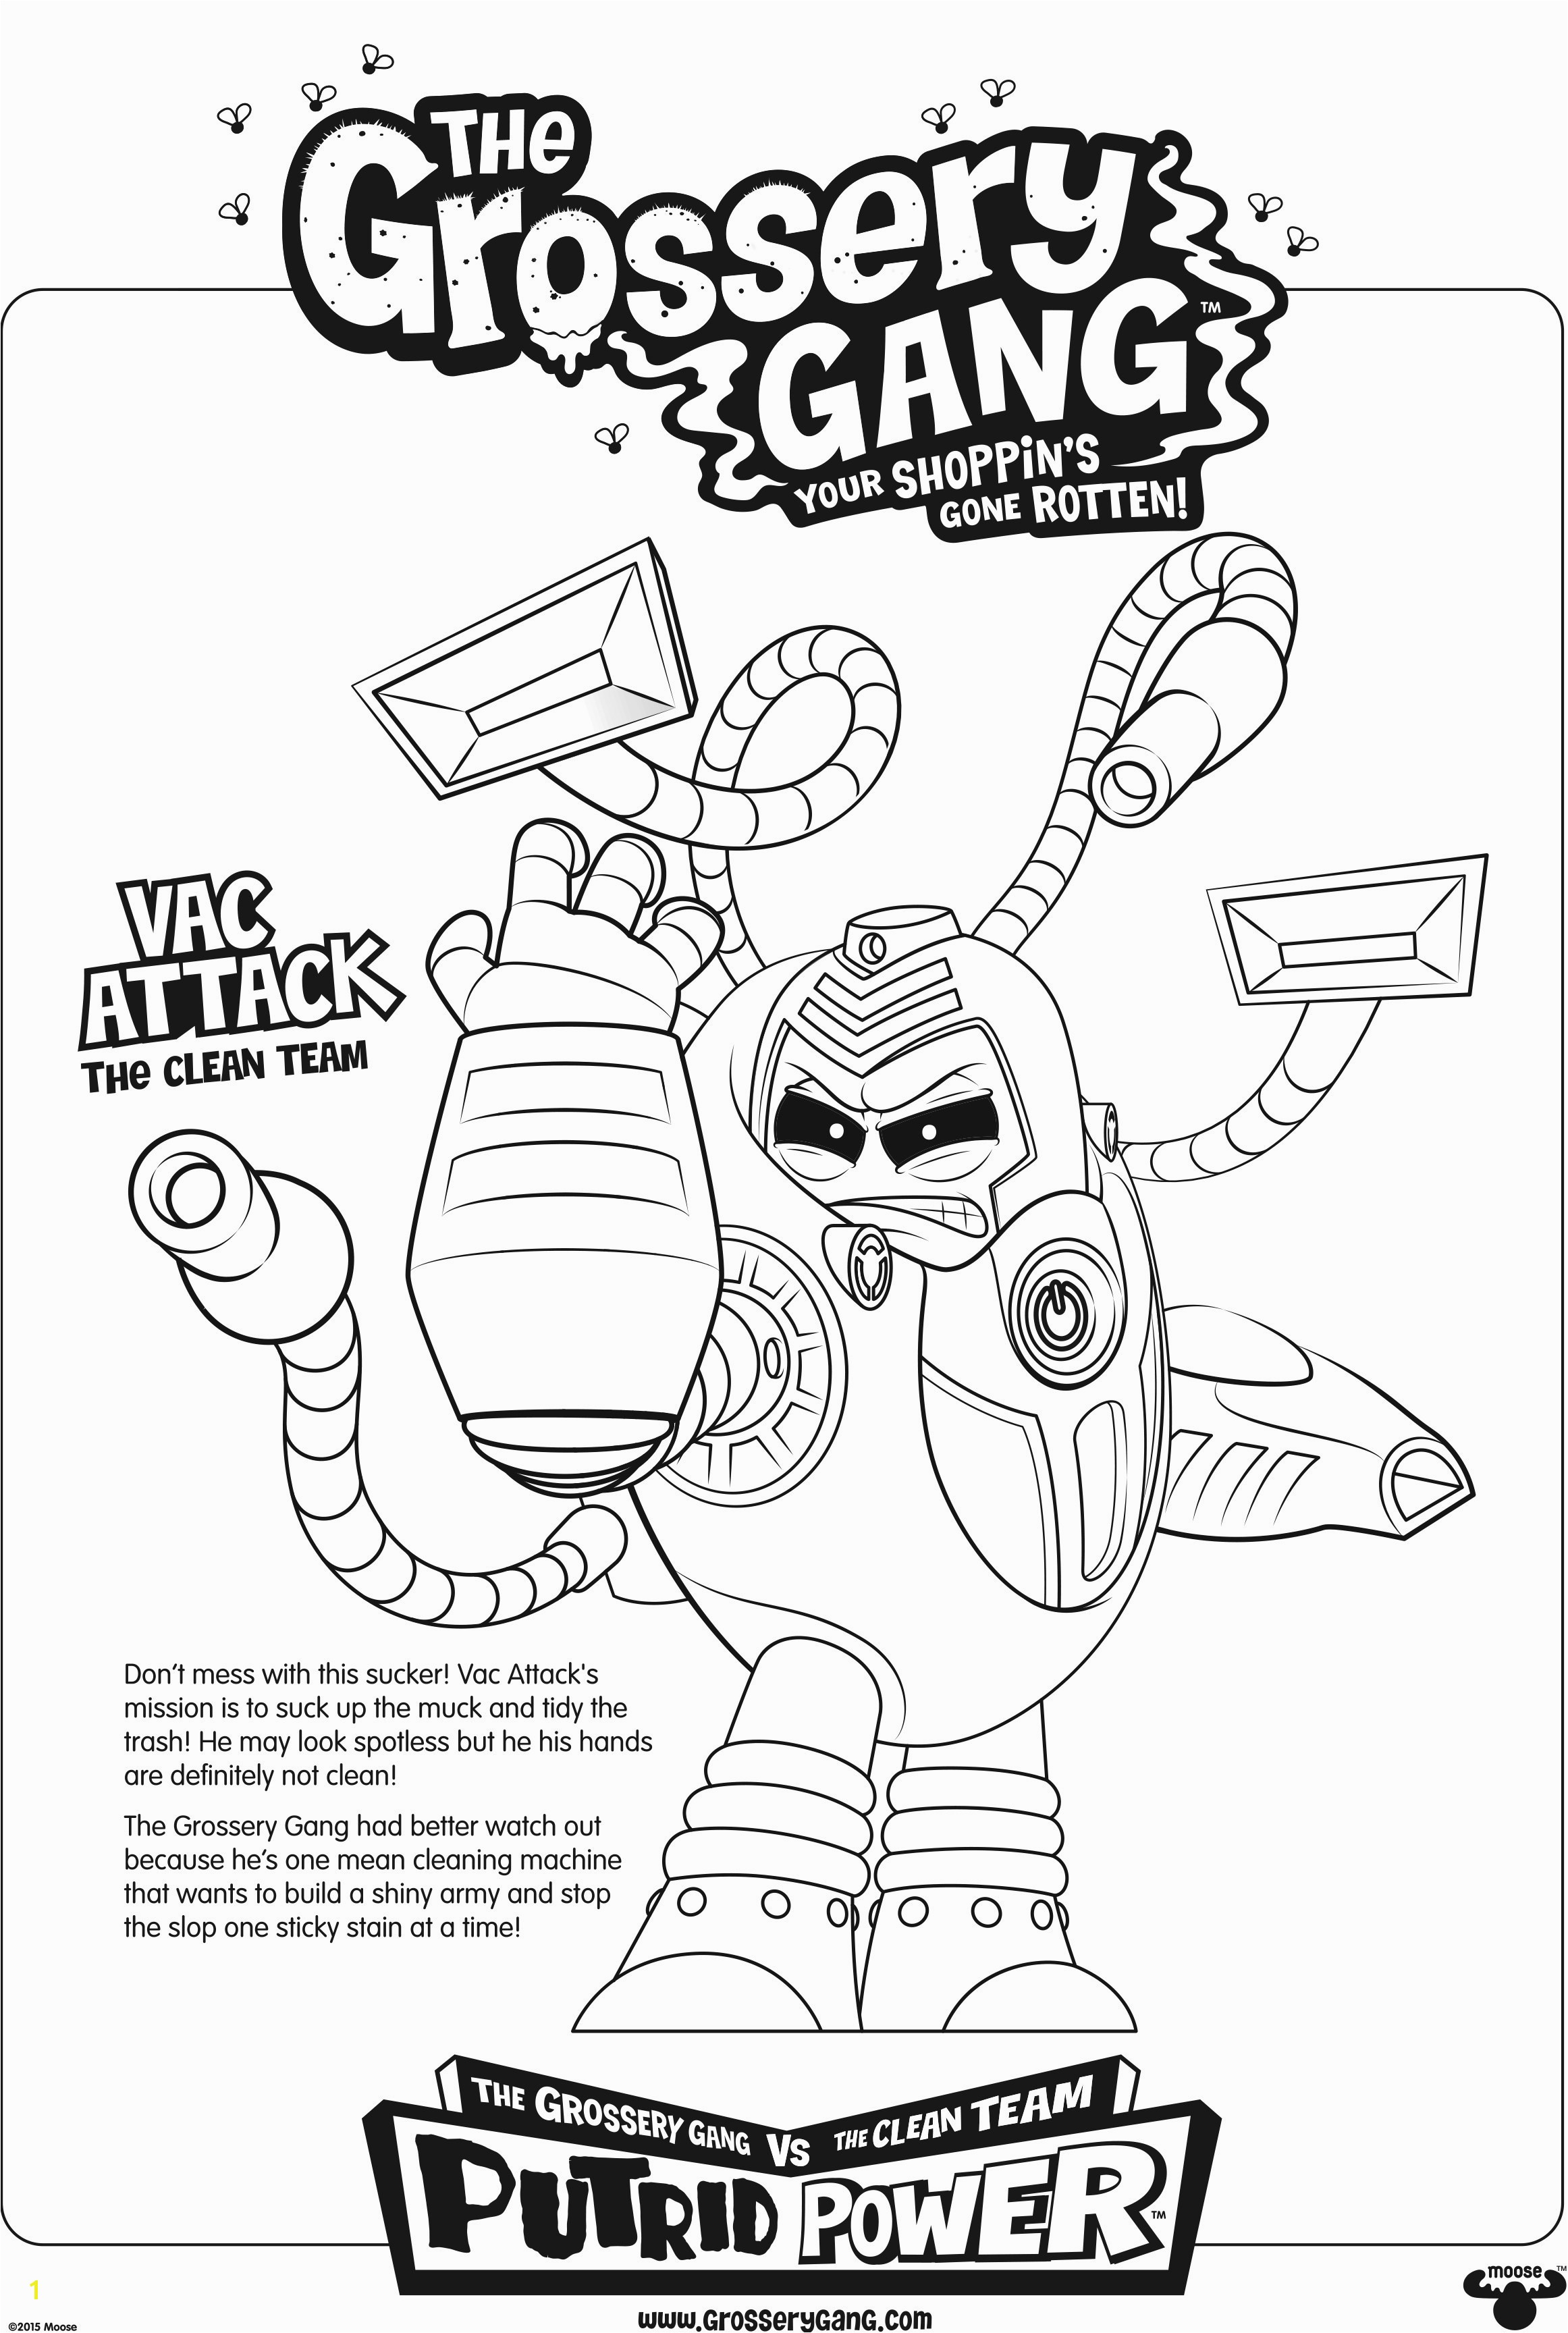 Potato Chip Coloring Page Unique Challenge Grossery Gang Coloring Pages Image G 6345 Unknown Potato